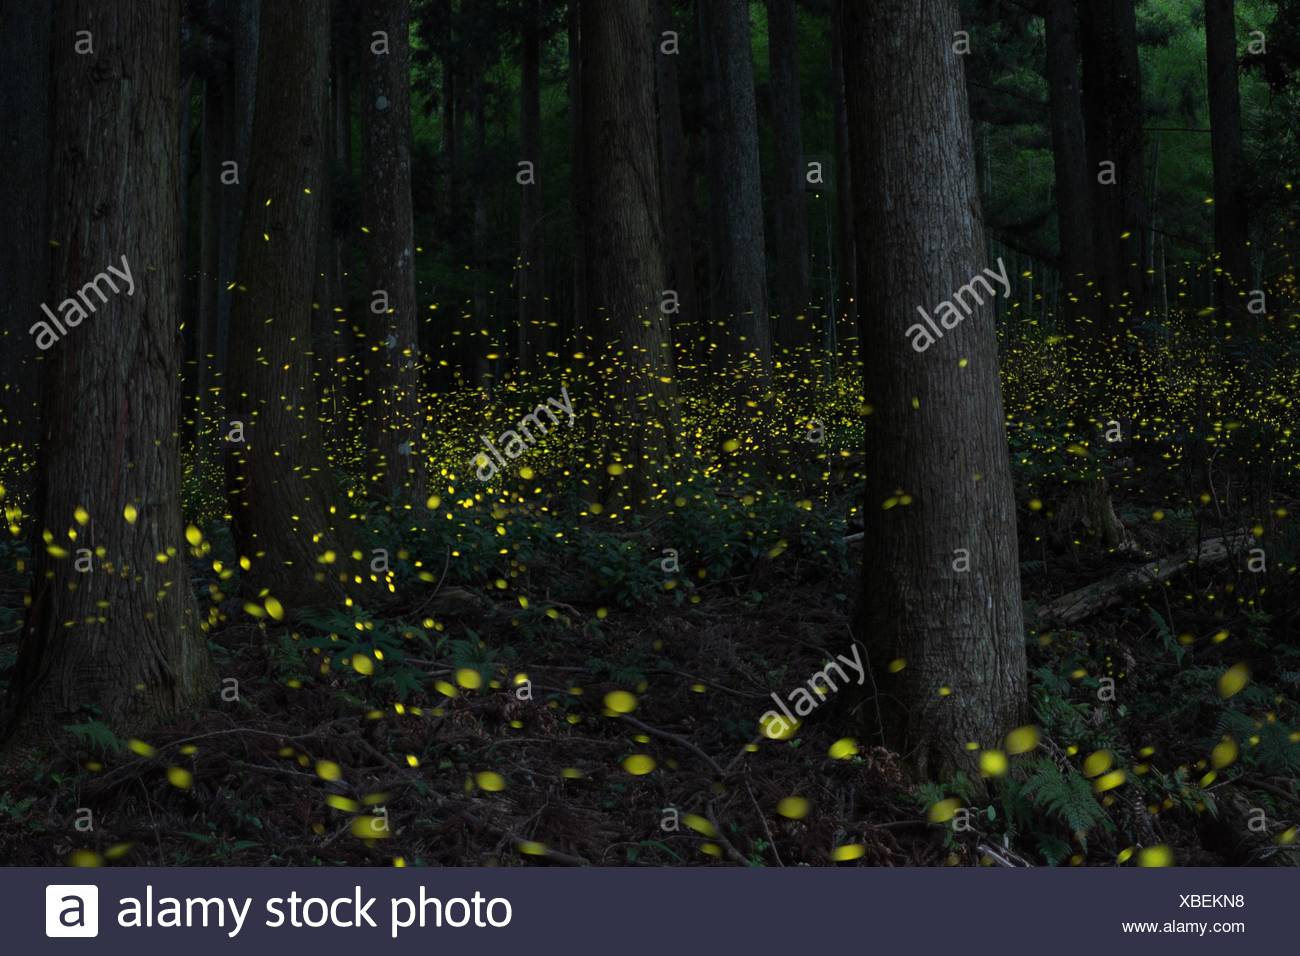 View Of Fireflies Glowing Amidst Trees In Forest - Stock Image